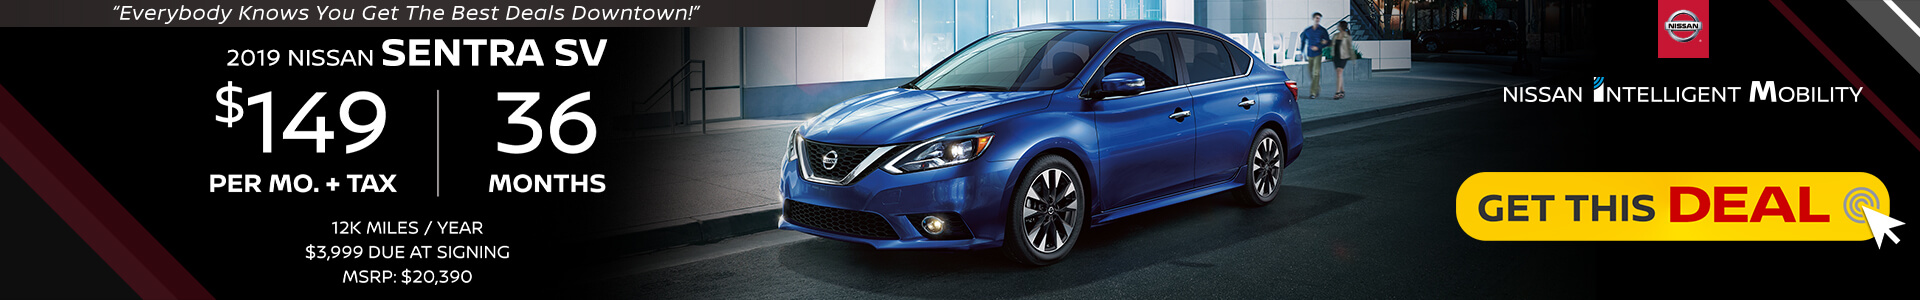 Sentra $149 Lease